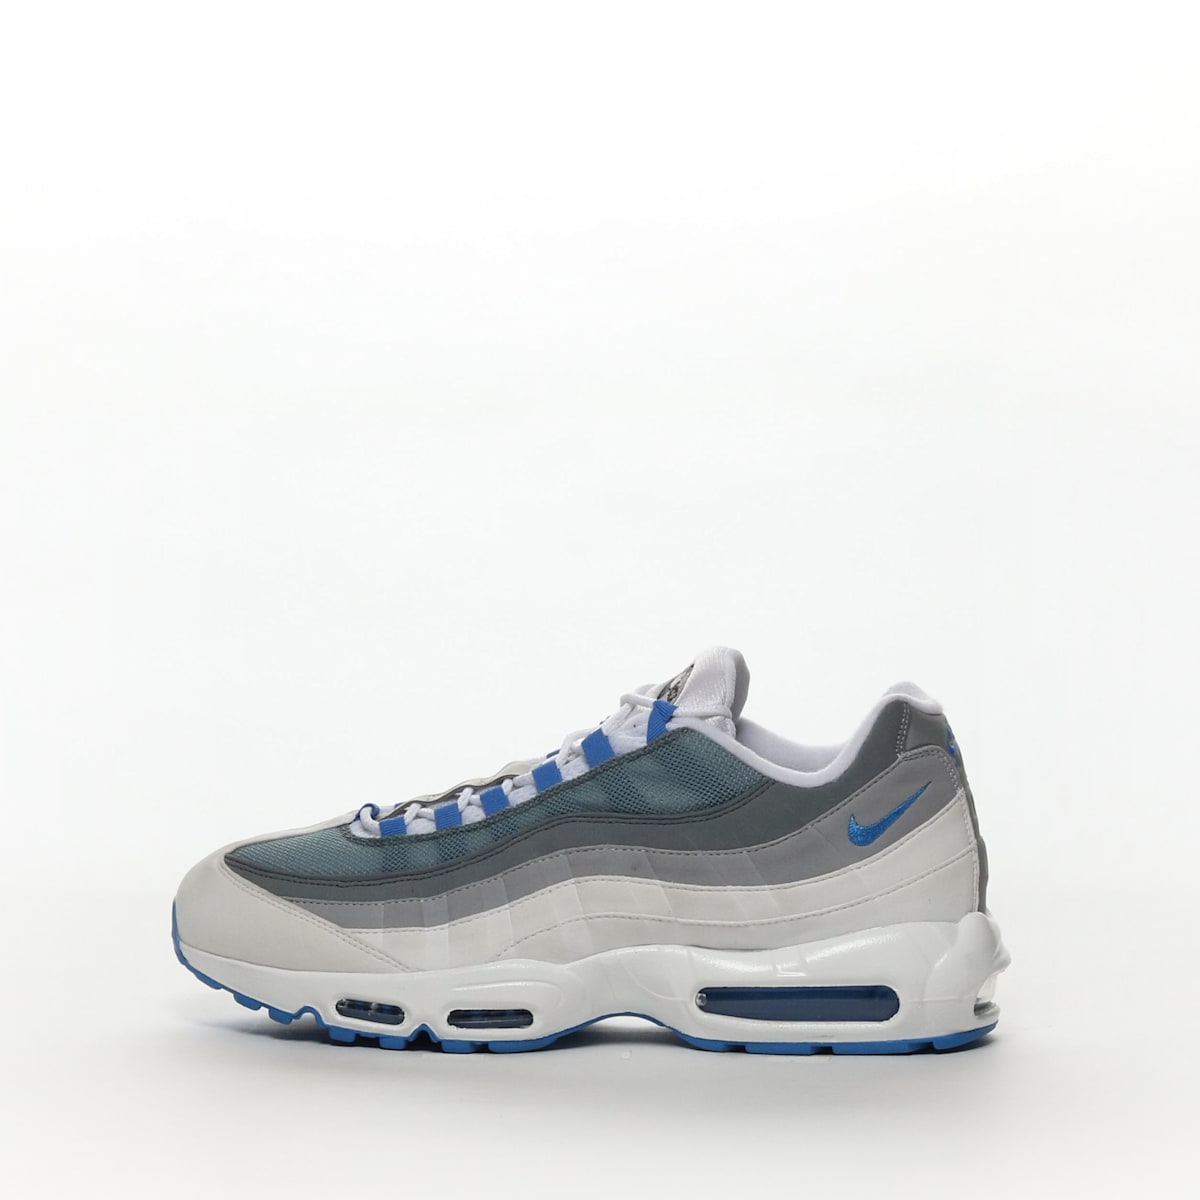 Men's Nike Air Max 95 ID White Grey 818592 996